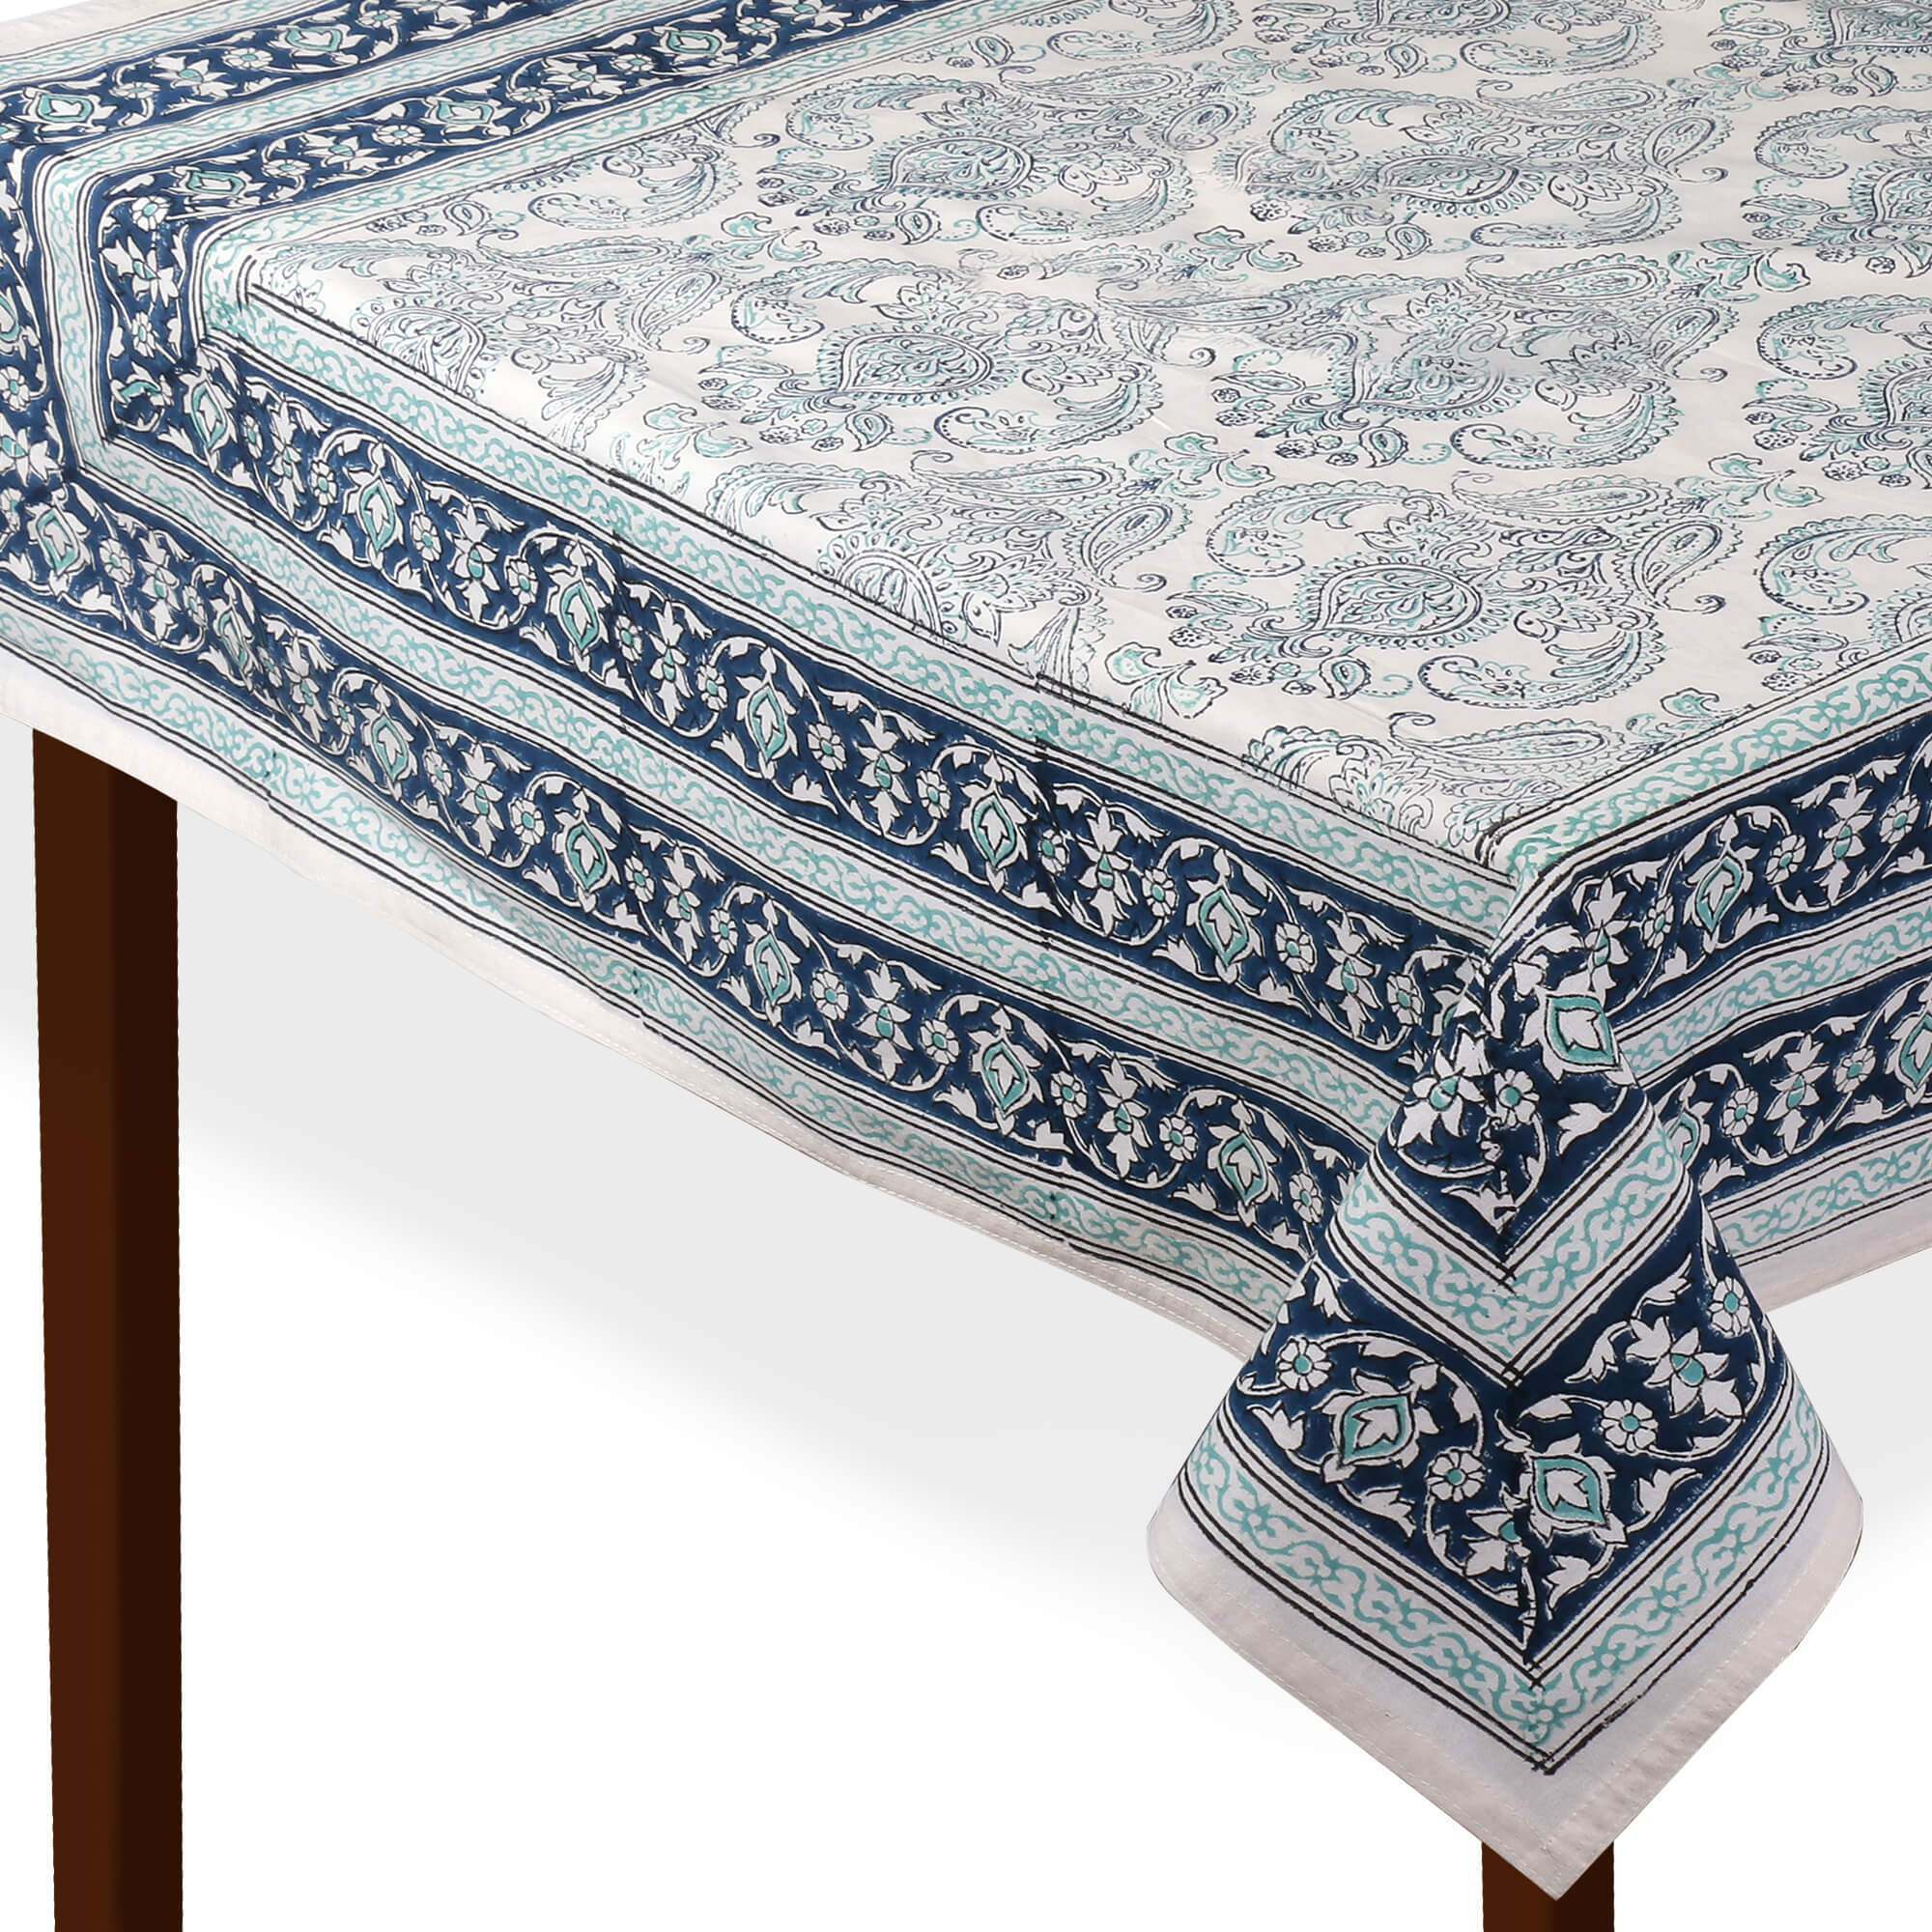 Jaipuri 6 Seater Cotton Table Cover - 7967